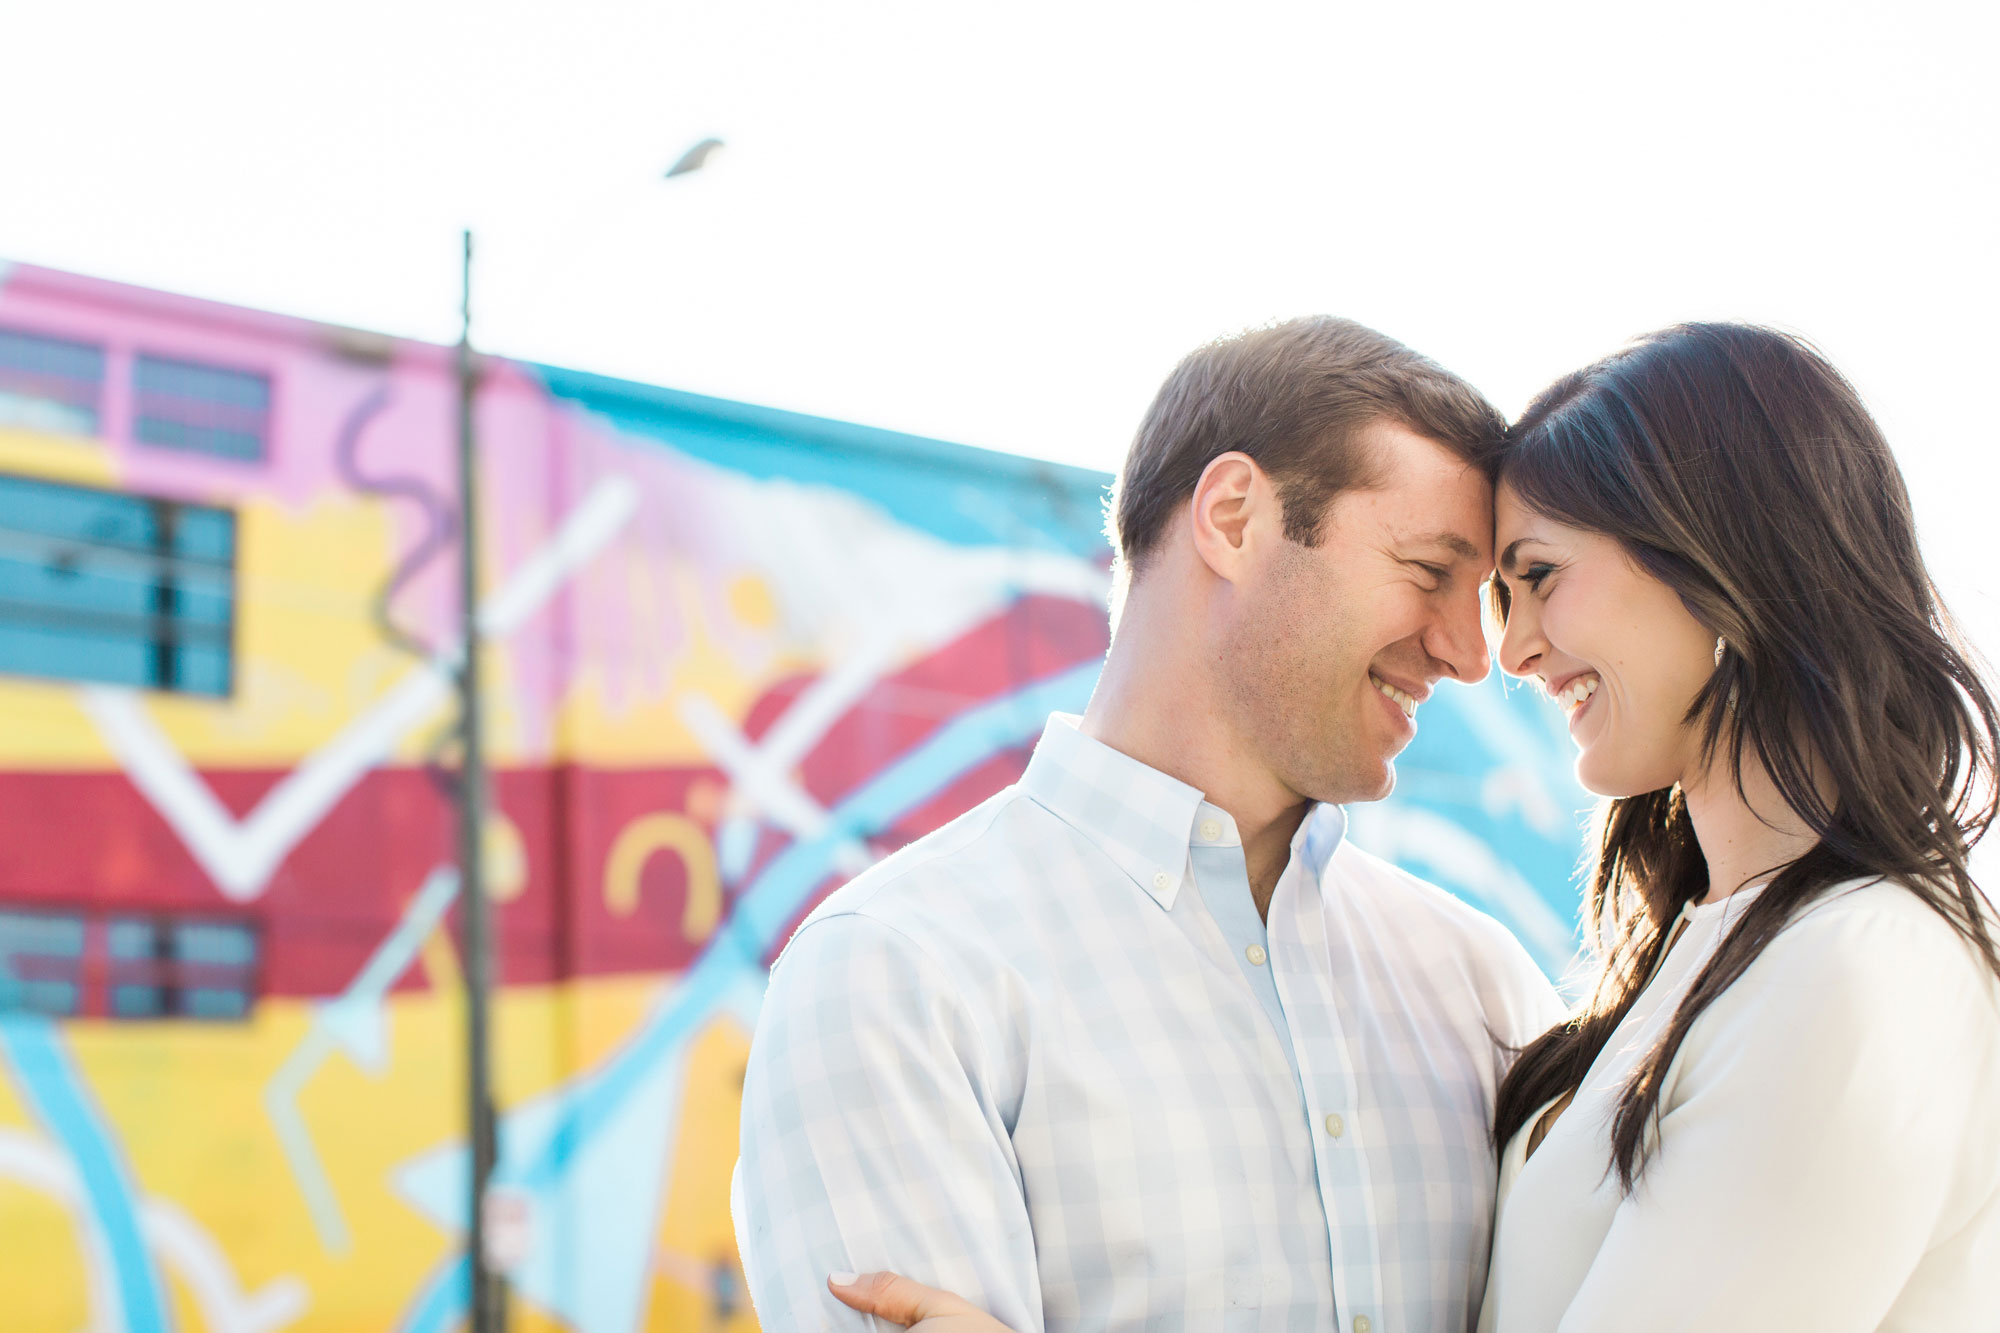 Graffiti wall engagement shoot location Vue Photography engagement session